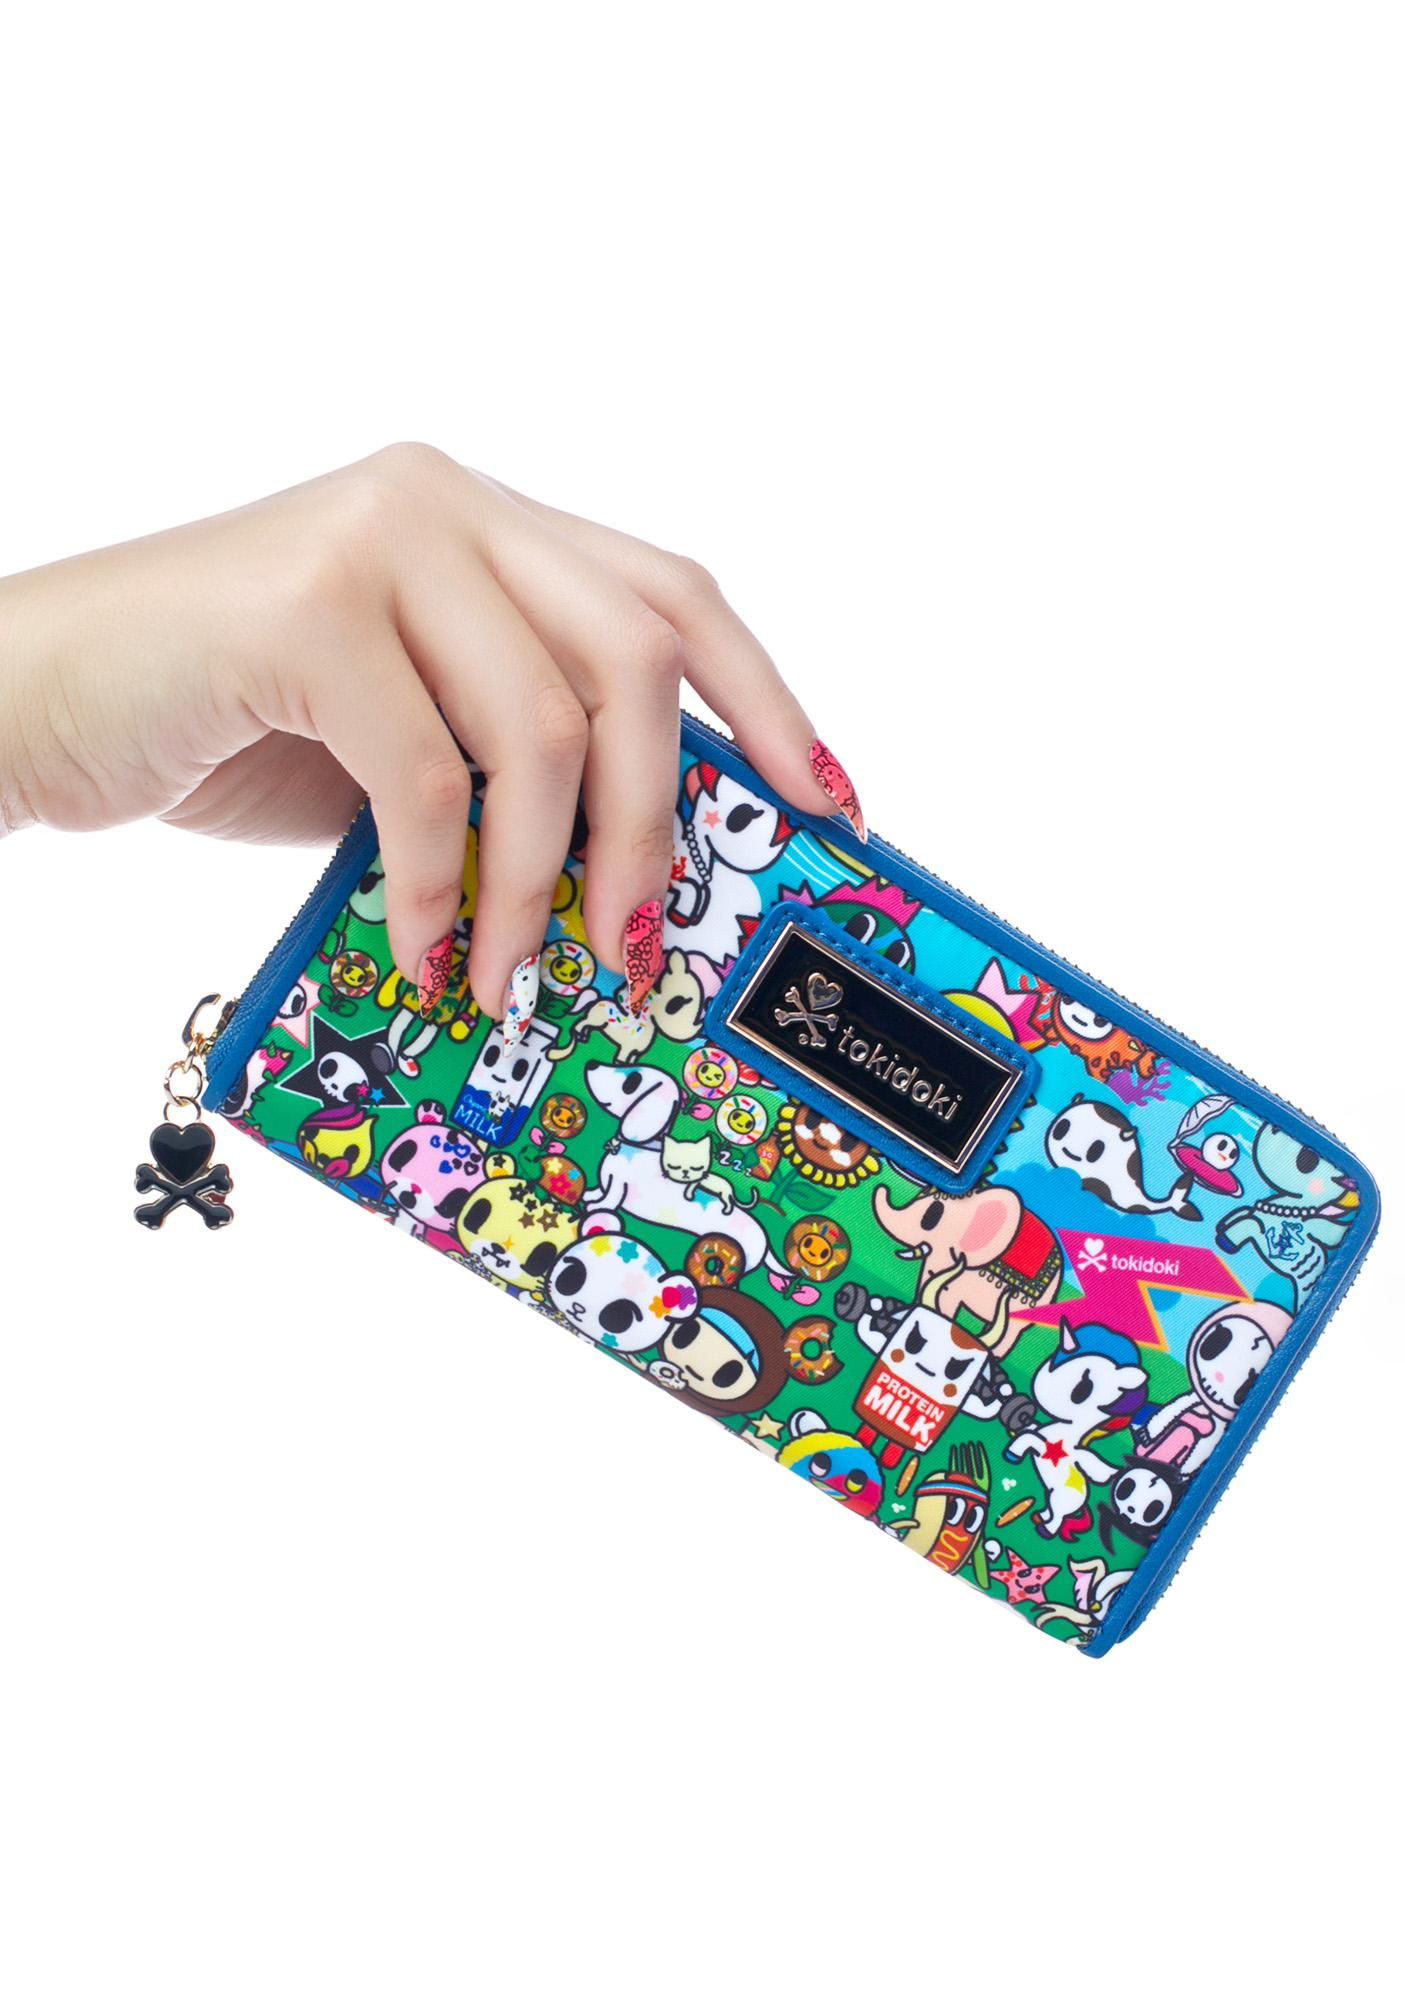 Tokidoki Summer Splash Large Wallet